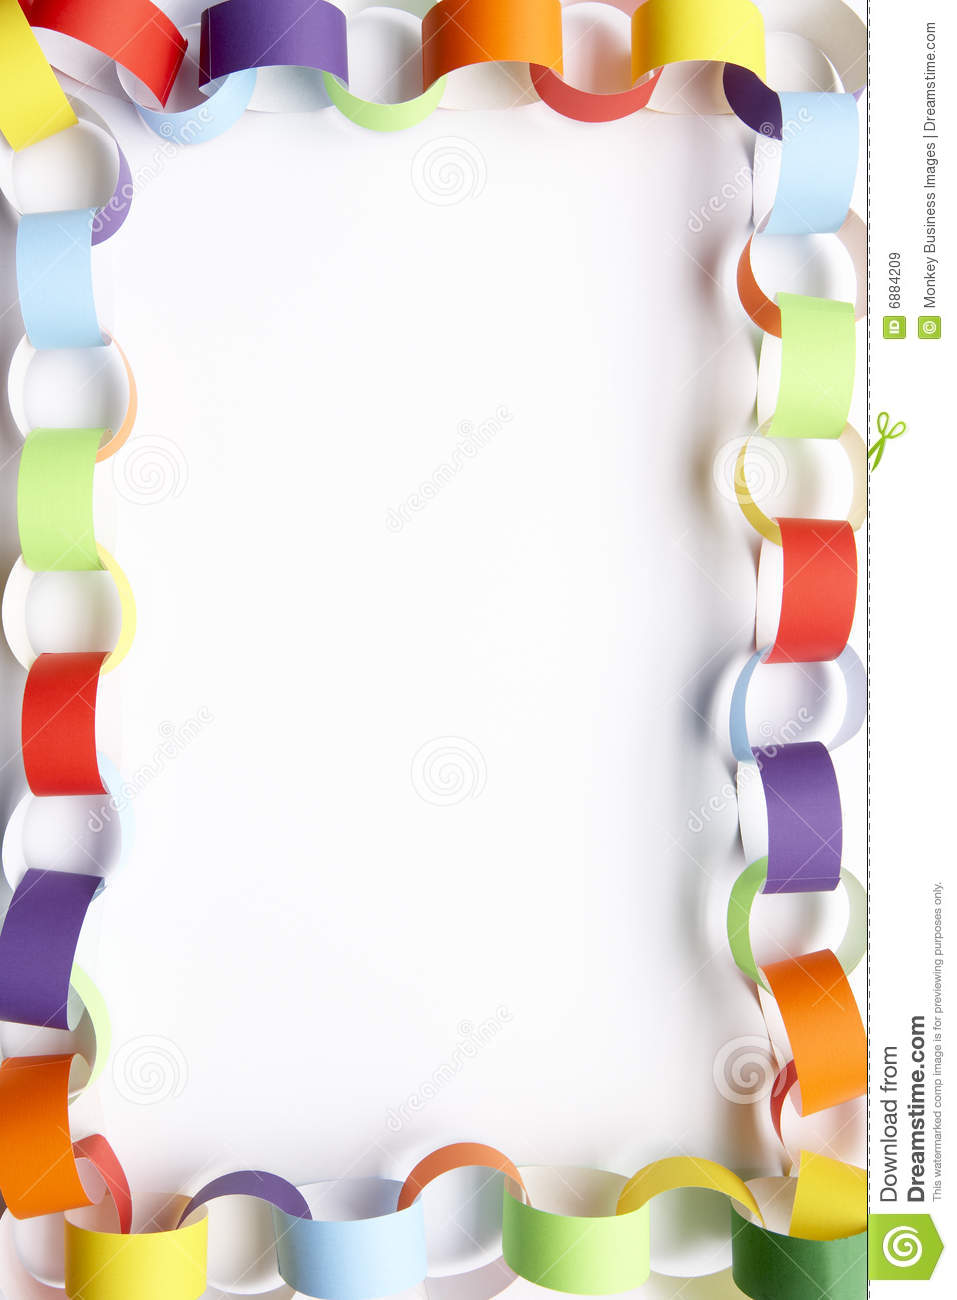 Border Made From Paper Chains Stock Image - Image of ...